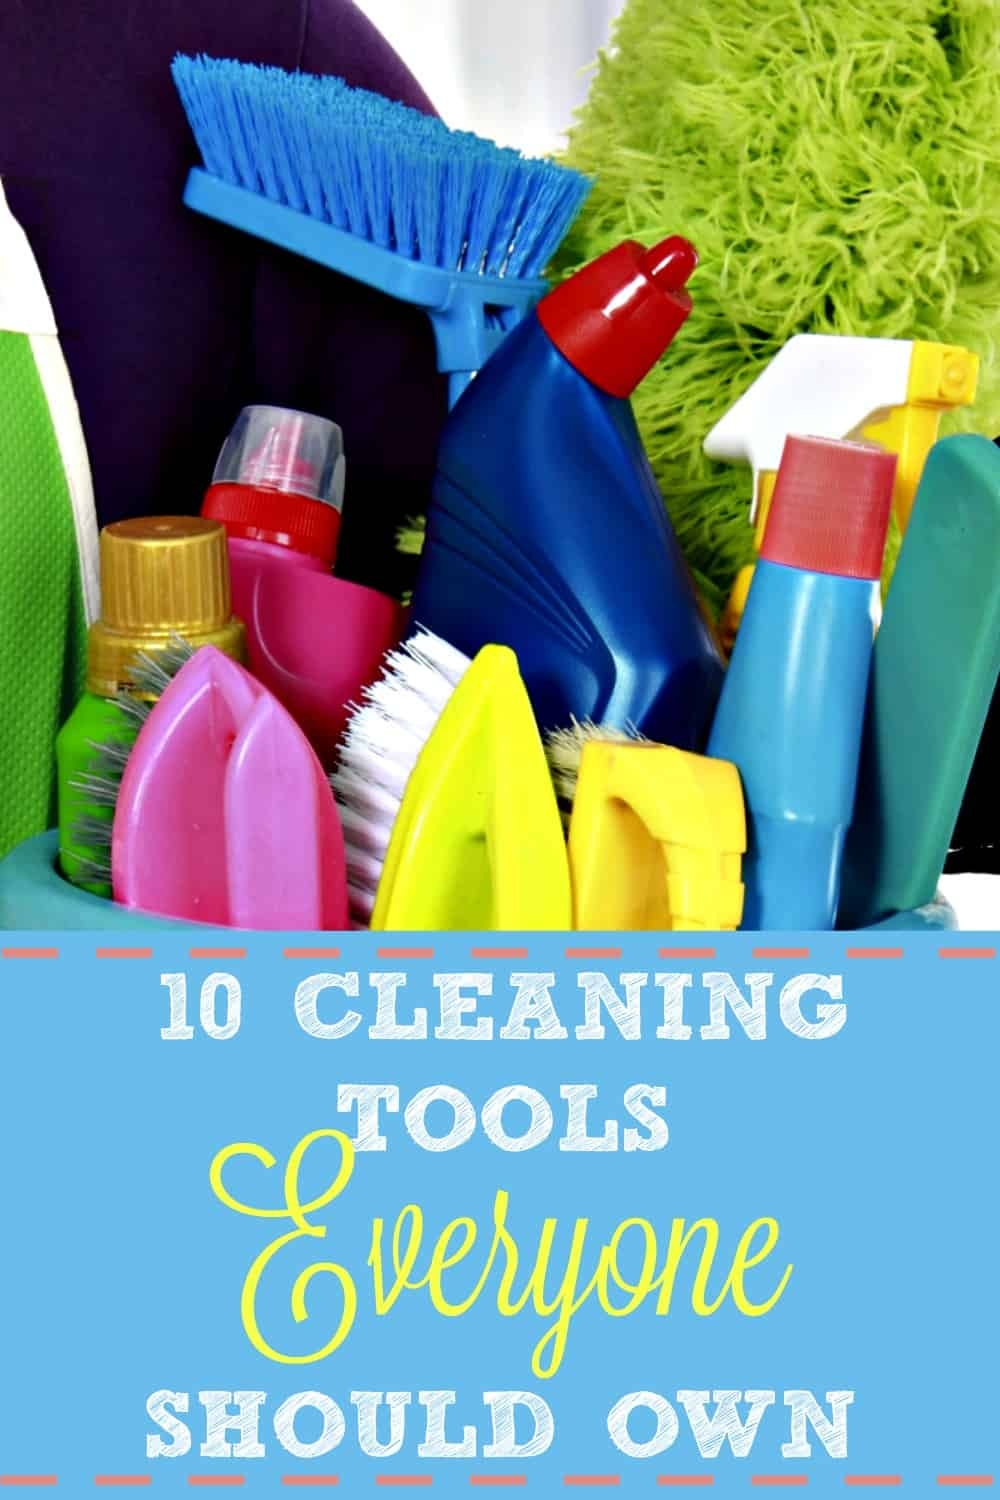 Have you overlooked one of these essential cleaning tools? Check out this list of 10 cleaning tools everyone should own whether you're just now setting up house, or looking to round out your cleaning arsenal.